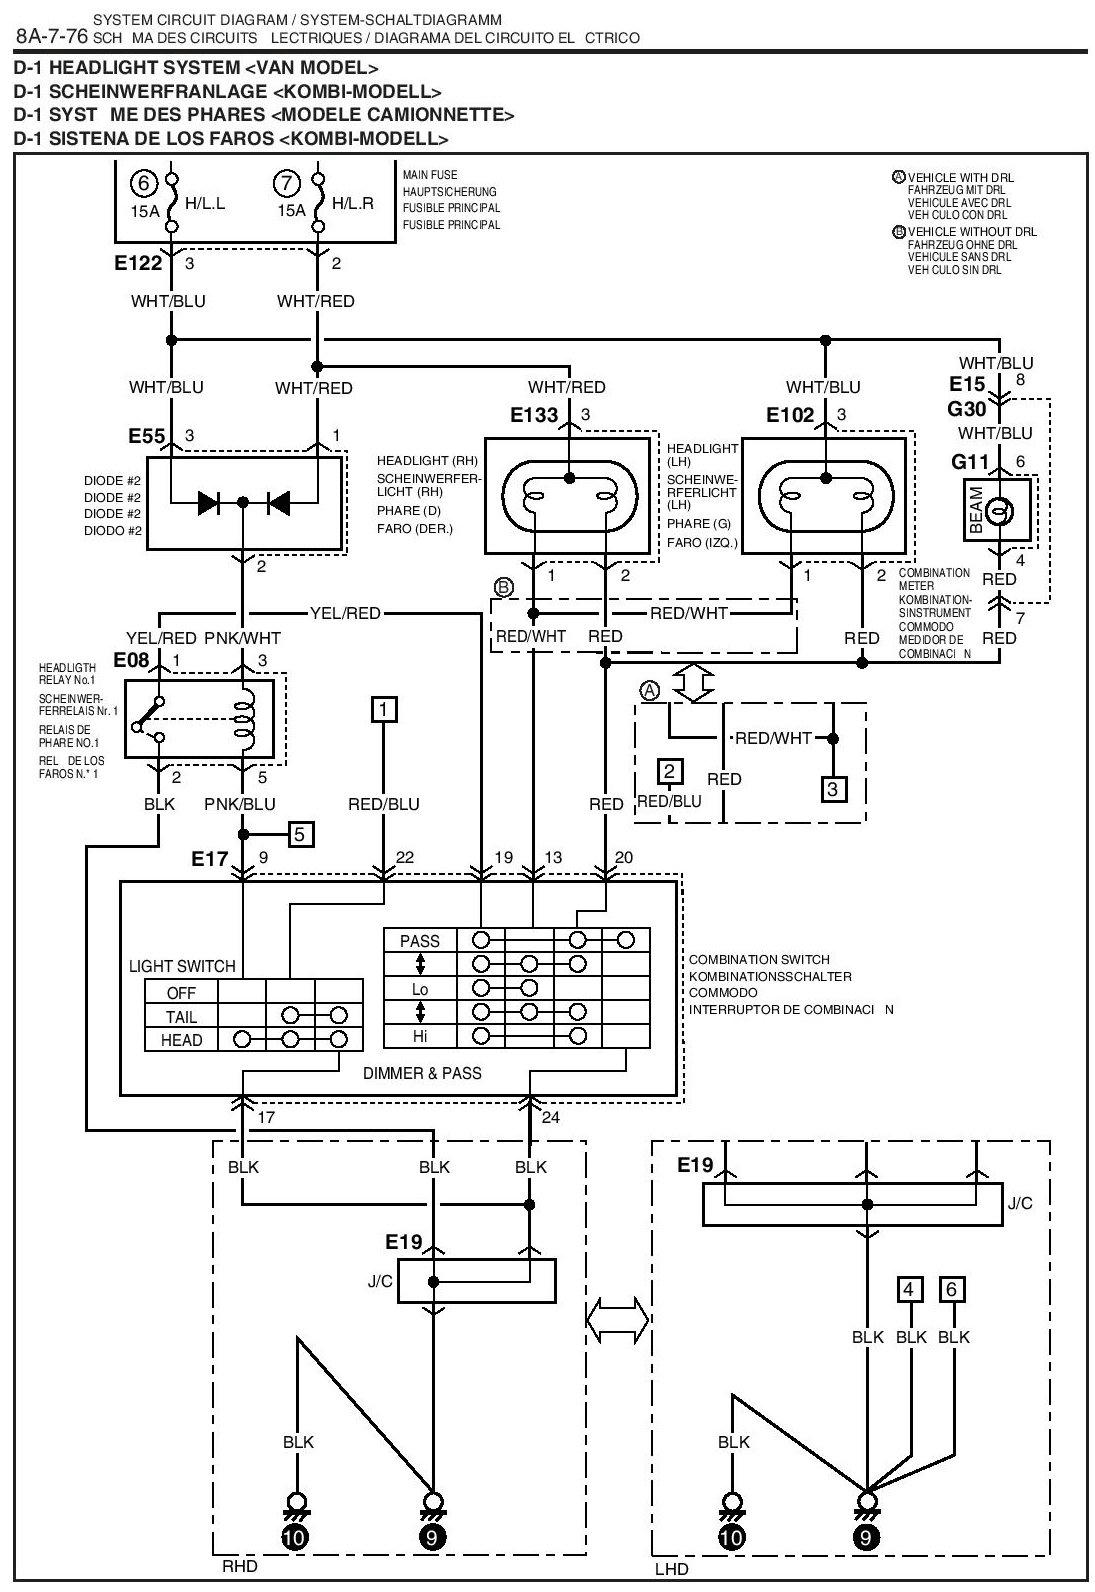 2007 suzuki xl7 fuse box diagram  u2022 wiring diagram for free